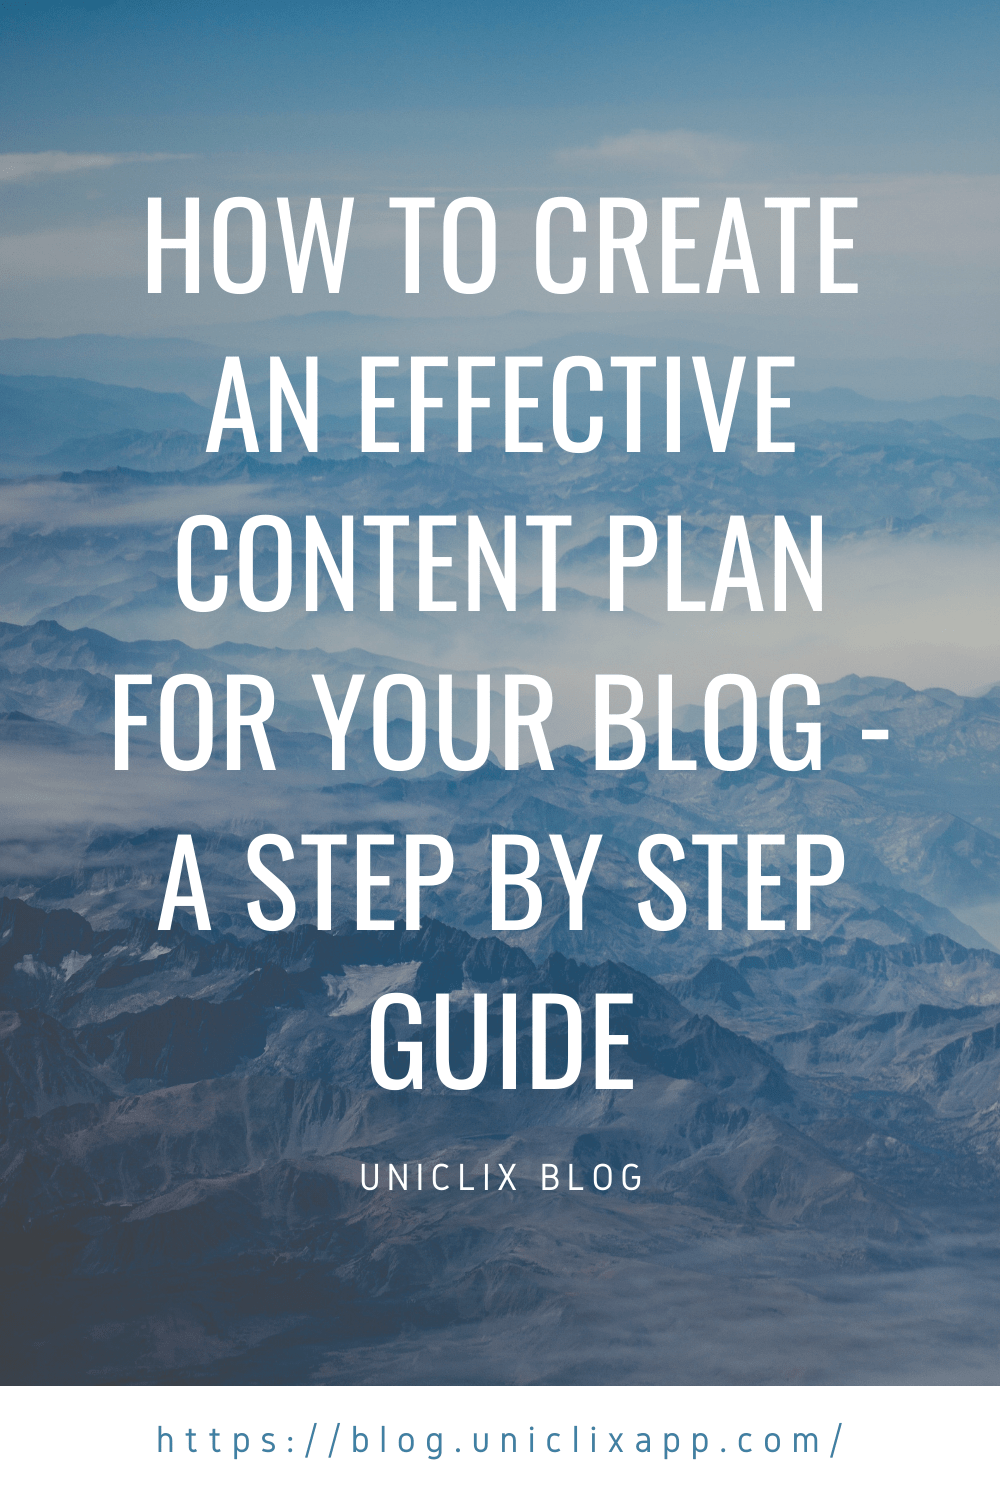 Effective content plan for your blog